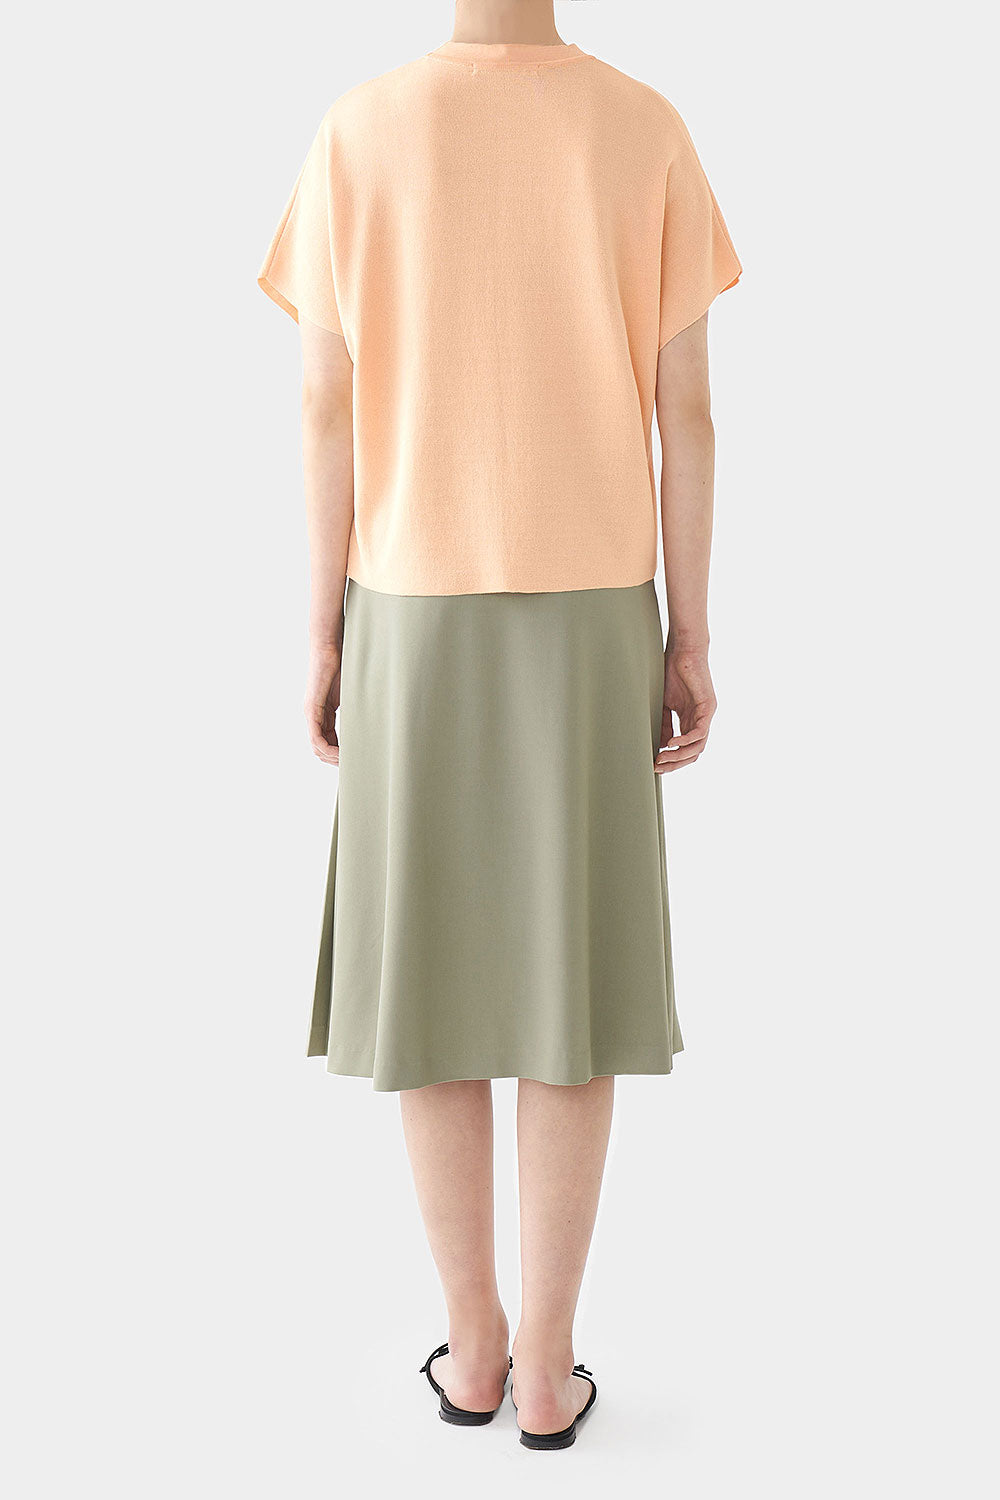 PEACH ANI PERFECT HIGH NECK TOP